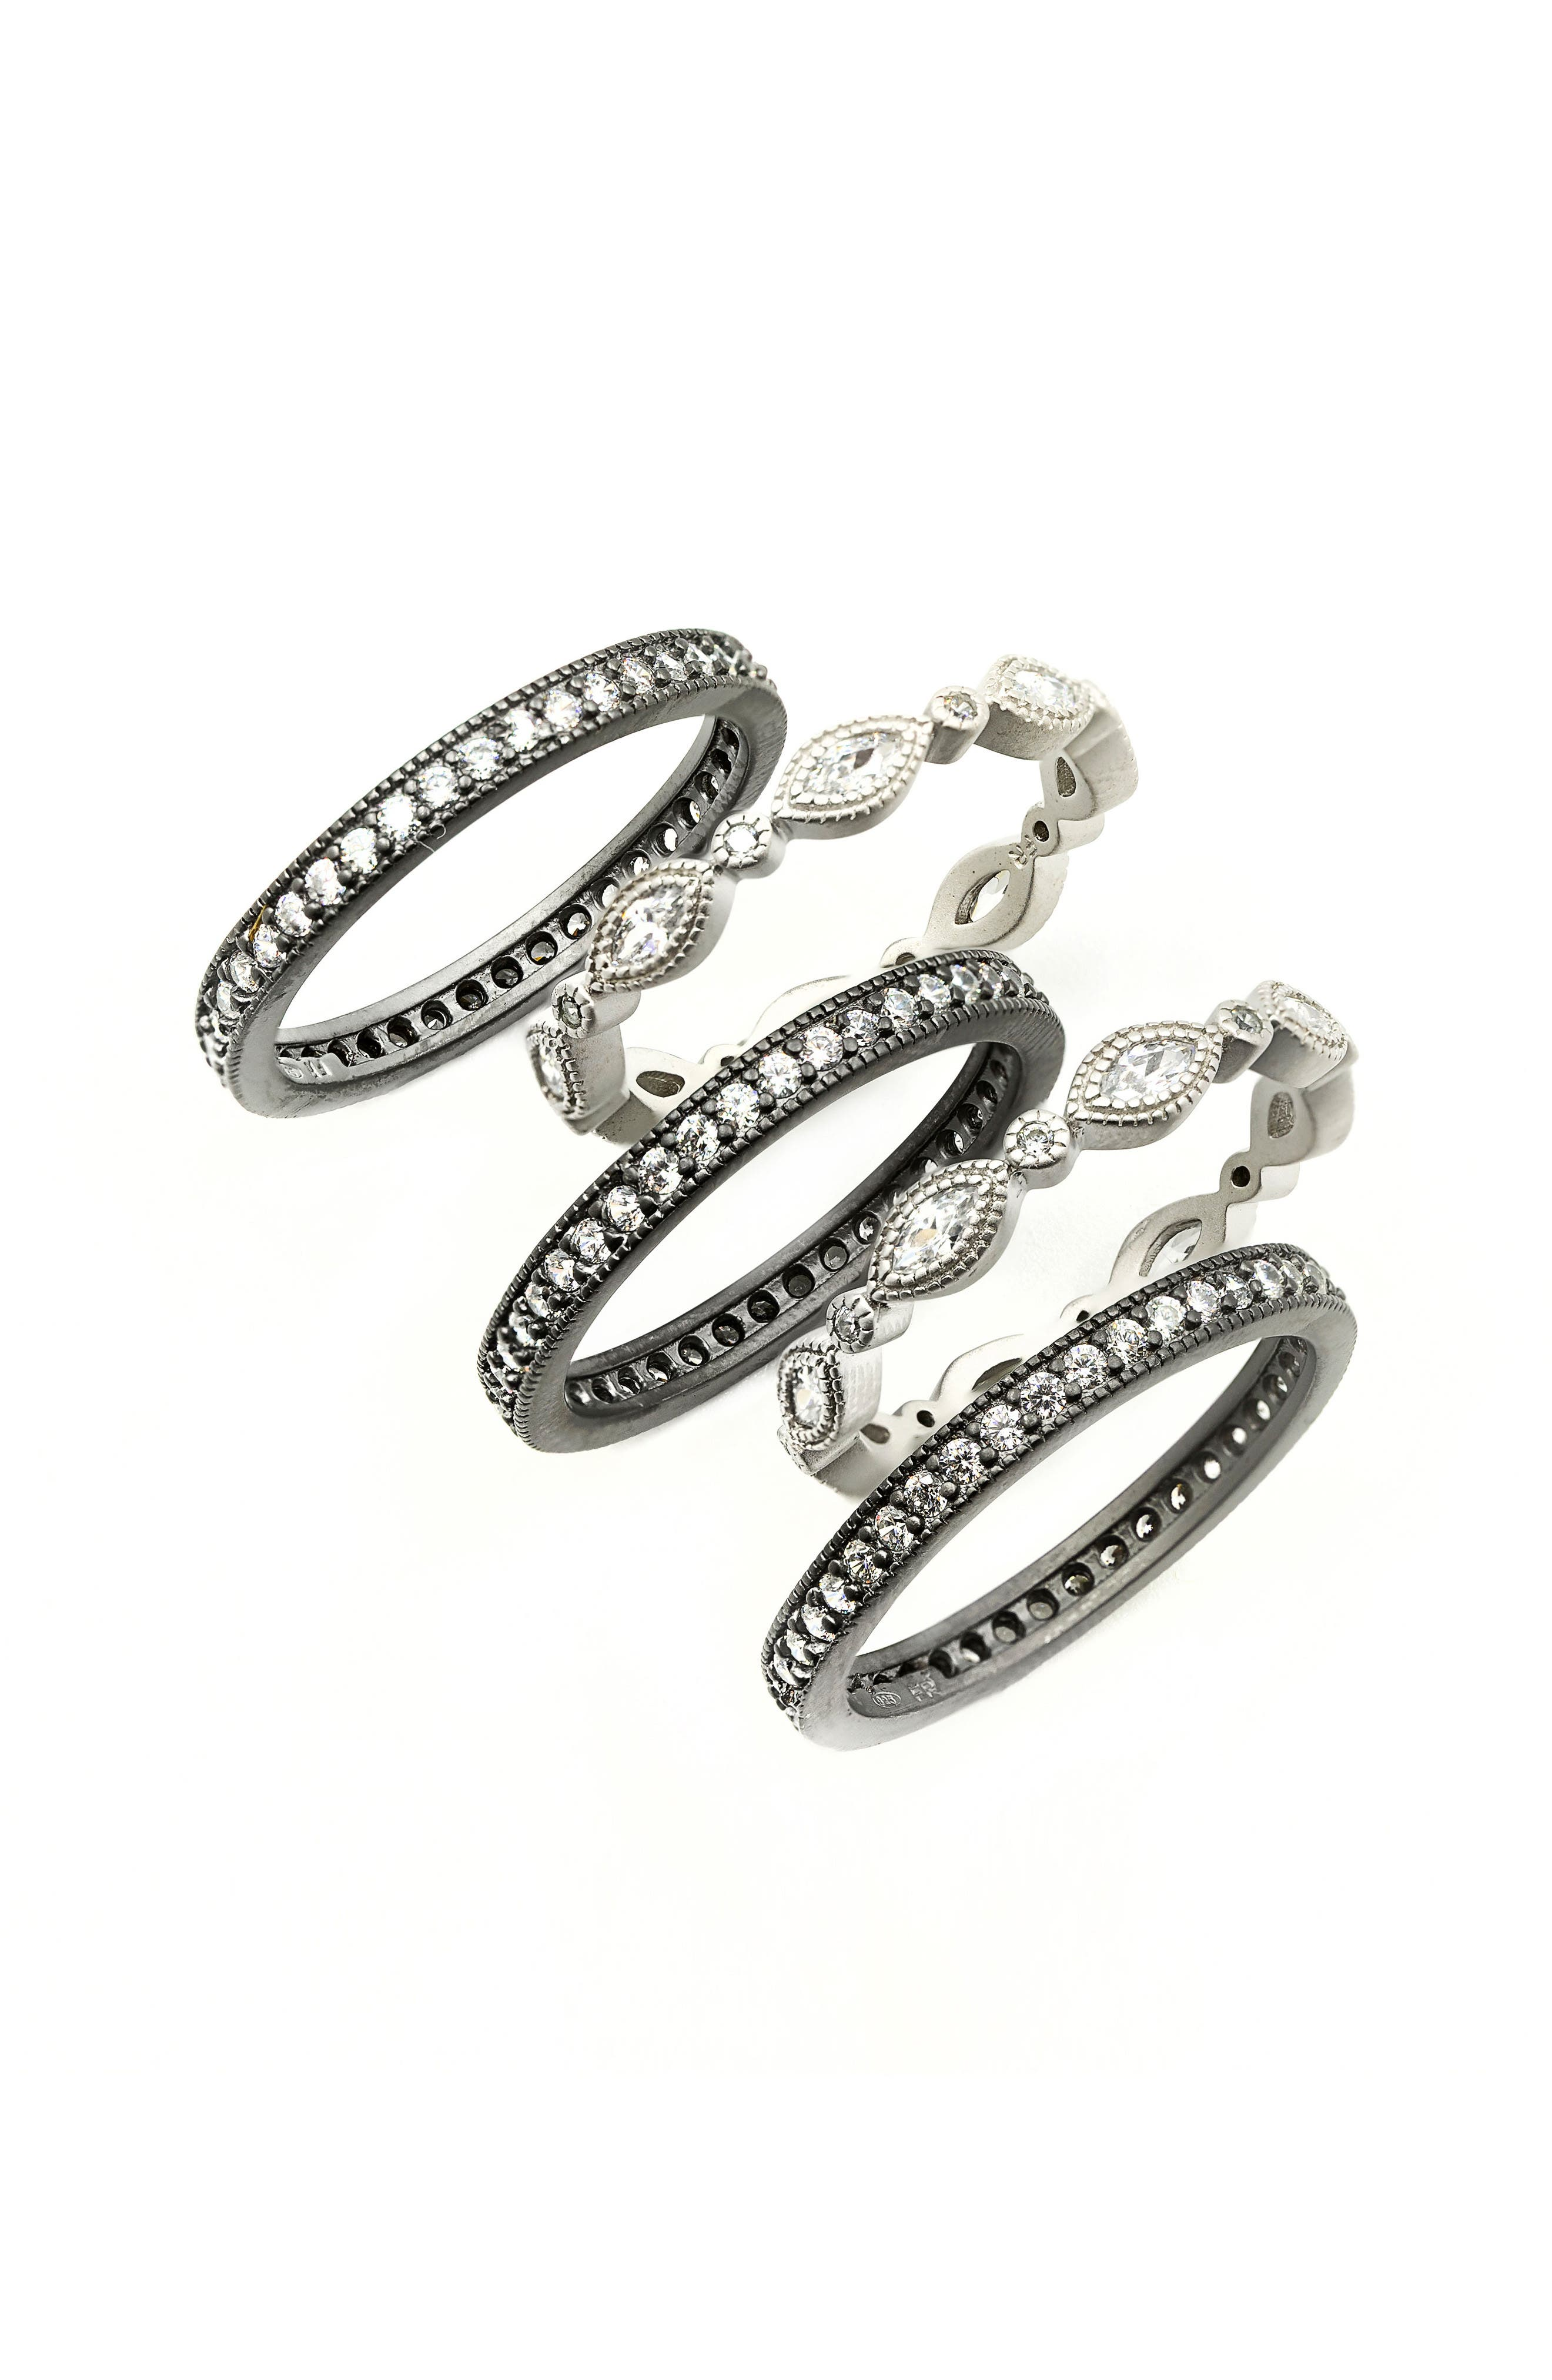 FREIDA ROTHMAN Stackable Eternity Band Rings (Set of 5)